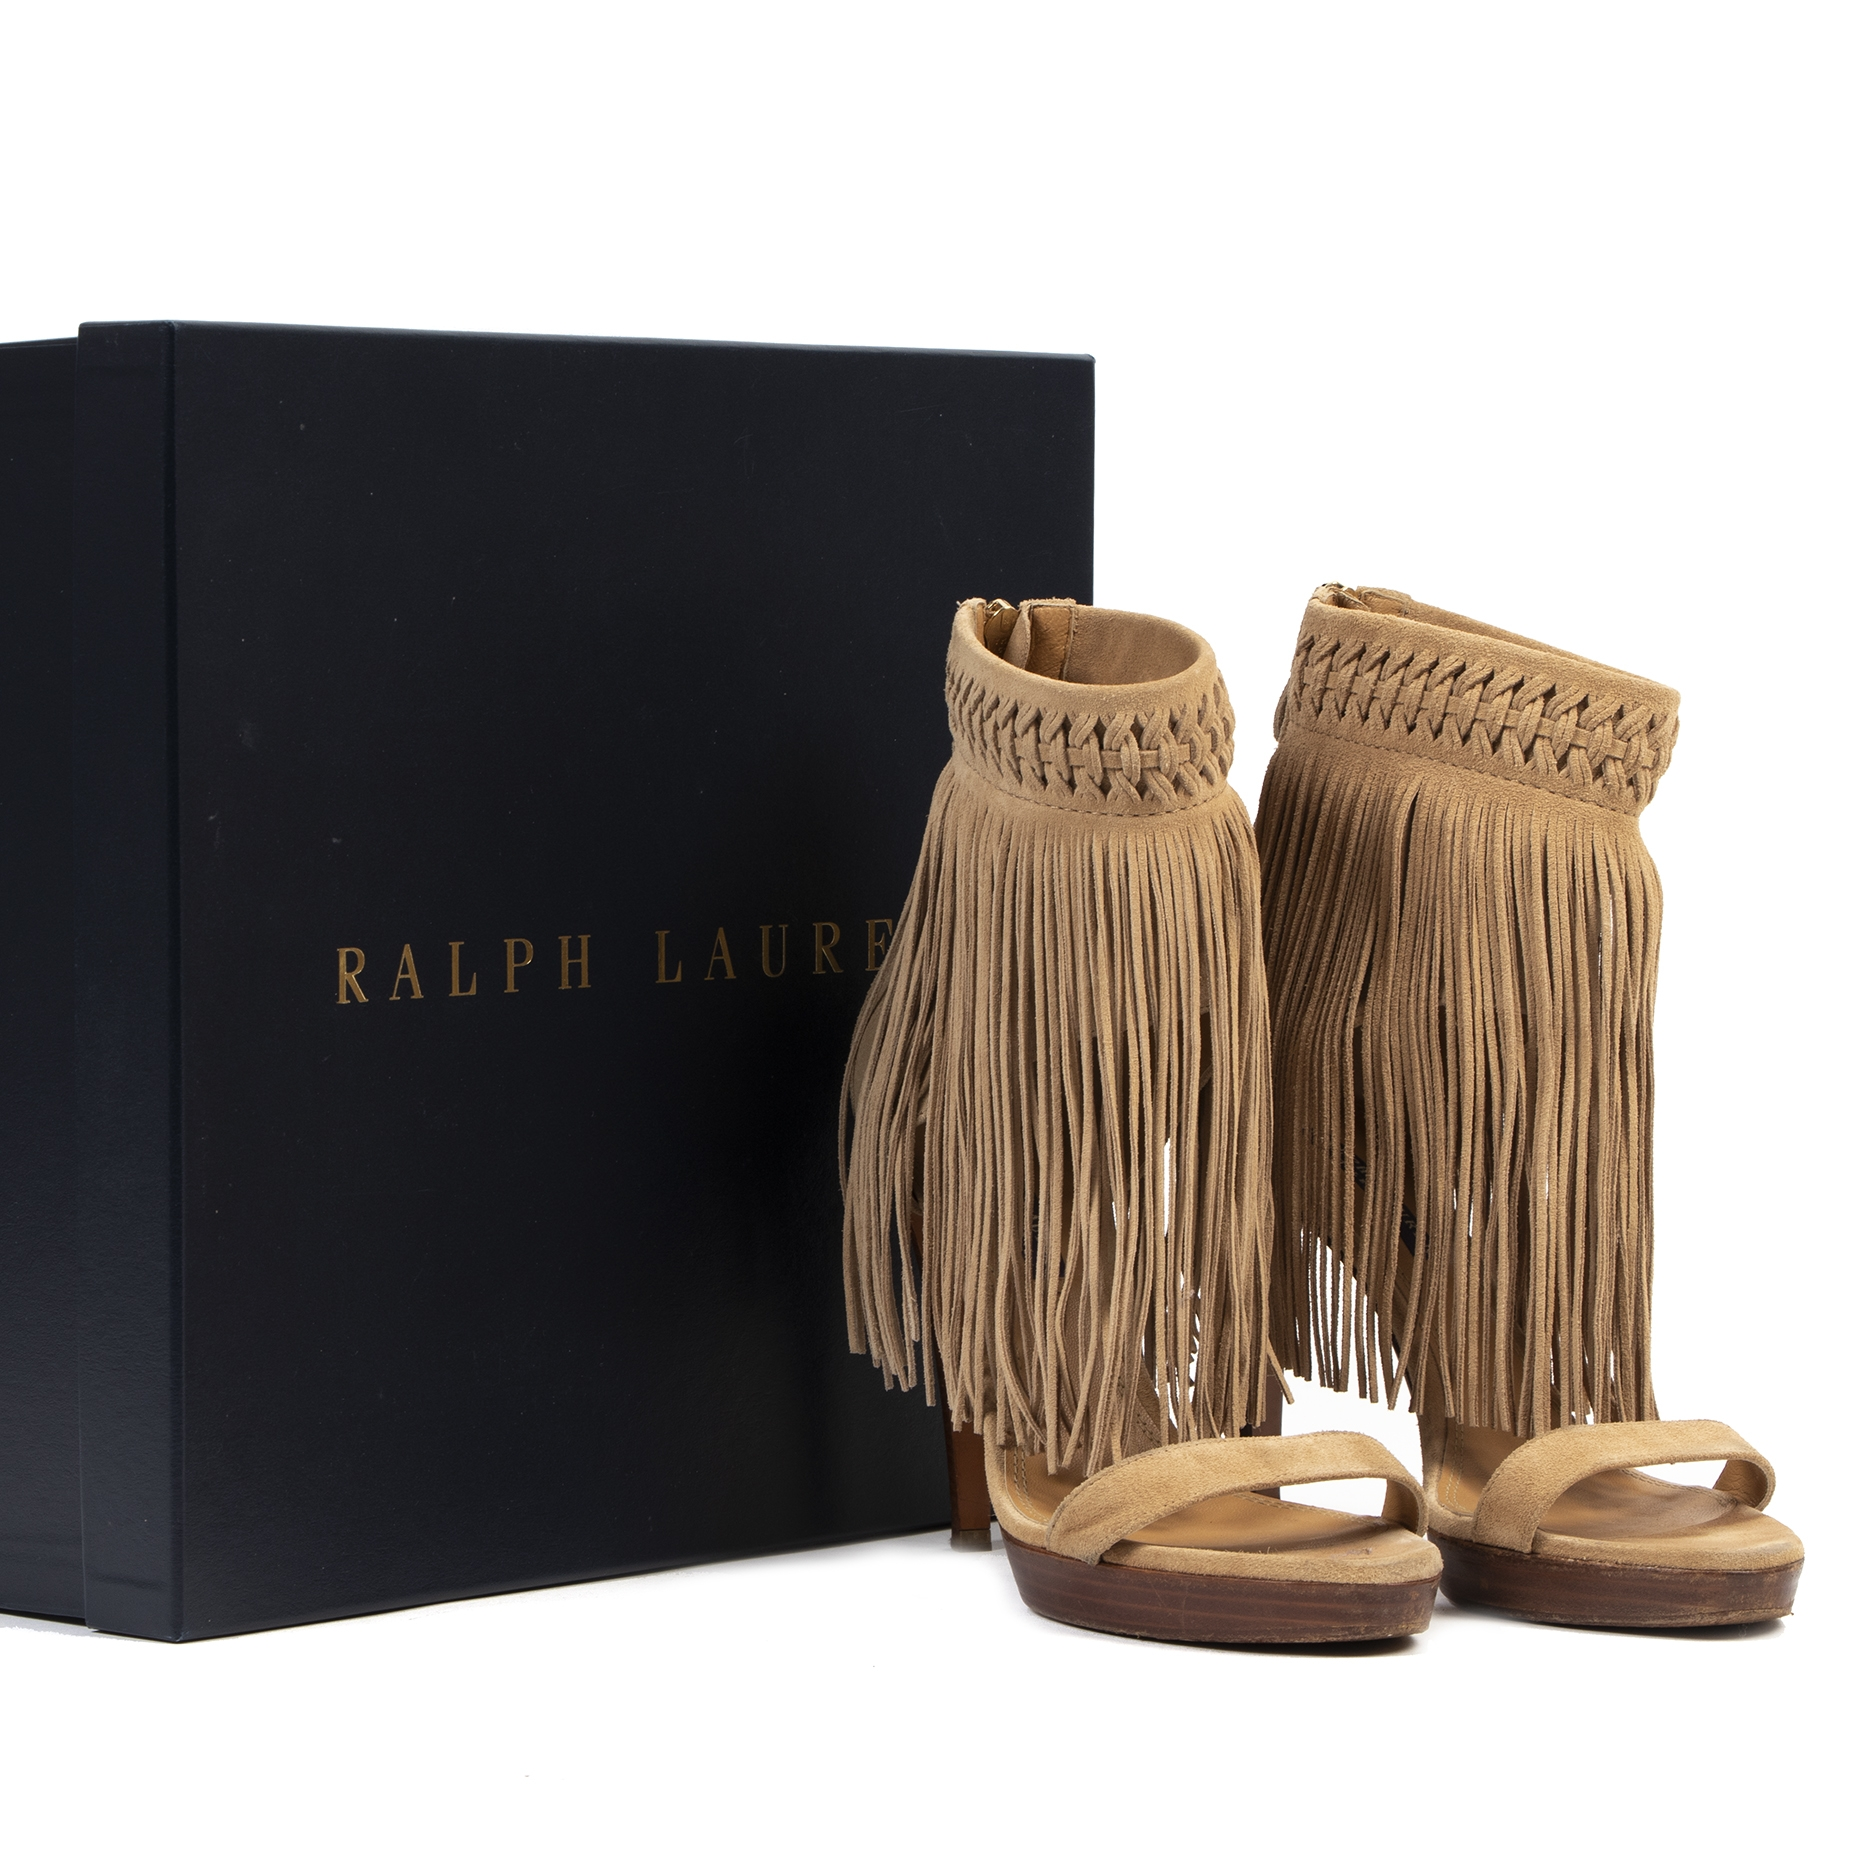 skip the waiting list shop safe online Ralph Lauren Beige Suede Fringe Platform Heels - Size 39,5